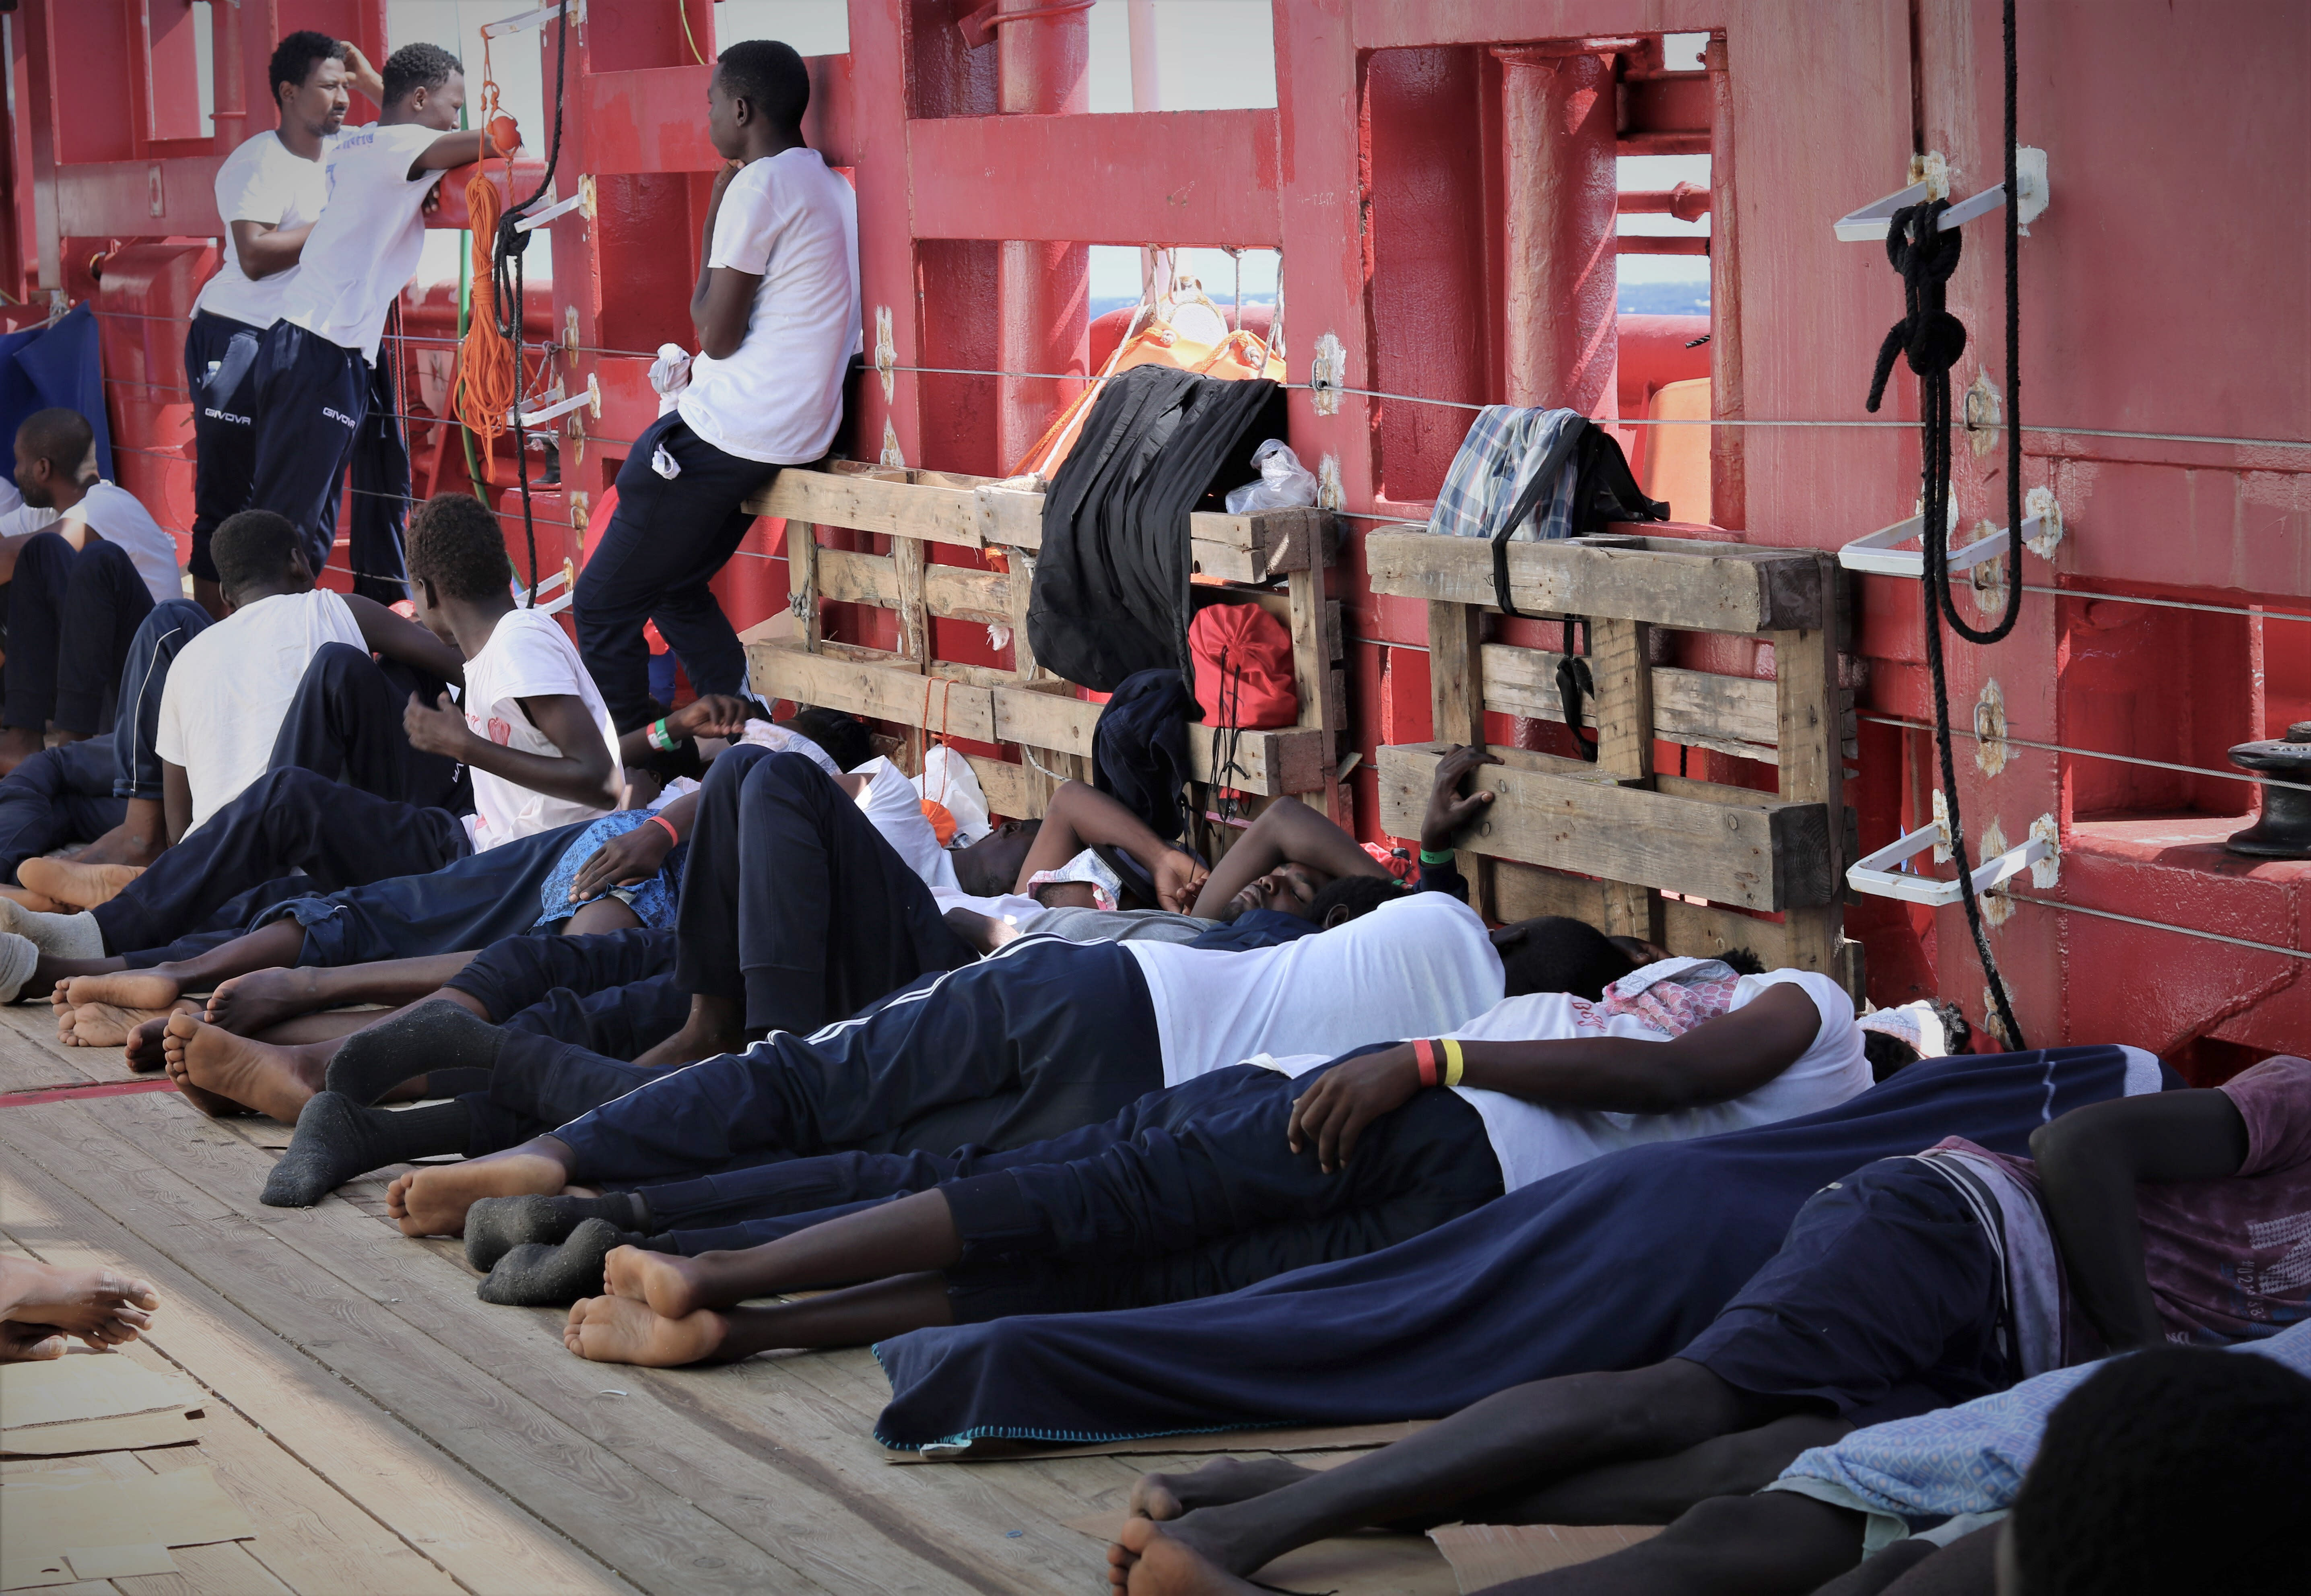 The Latest: Portugal offers to take 35 people from Med  ship